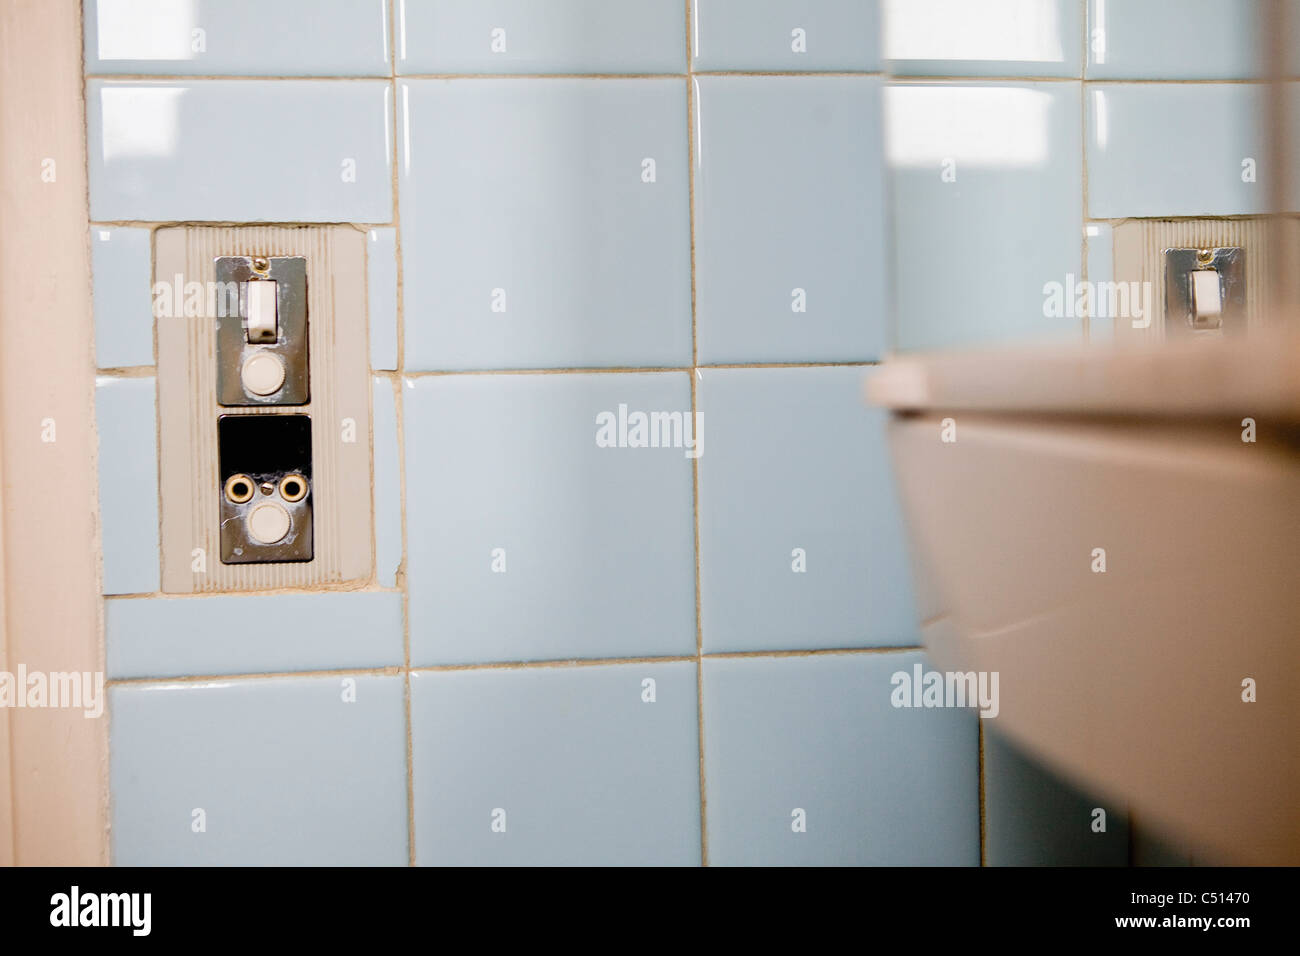 Ight switch and electrical outlet on tiled wall - Stock Image